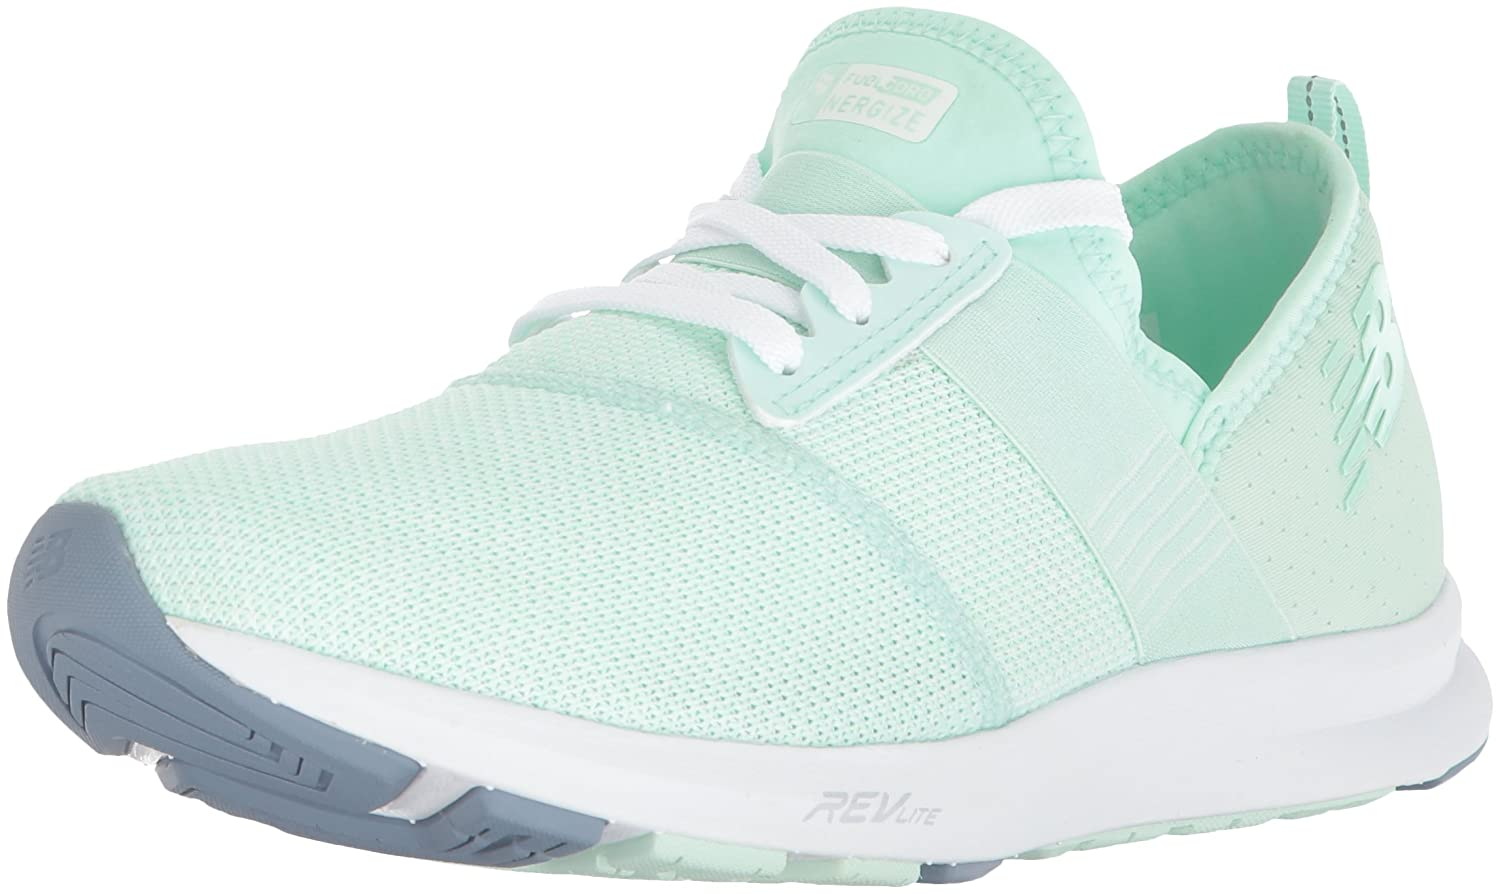 New Balance Women's FuelCore Nergize V1 Fuel Core Cross Trainer B0751PZDCL 10.5 D US|Seafoam/White